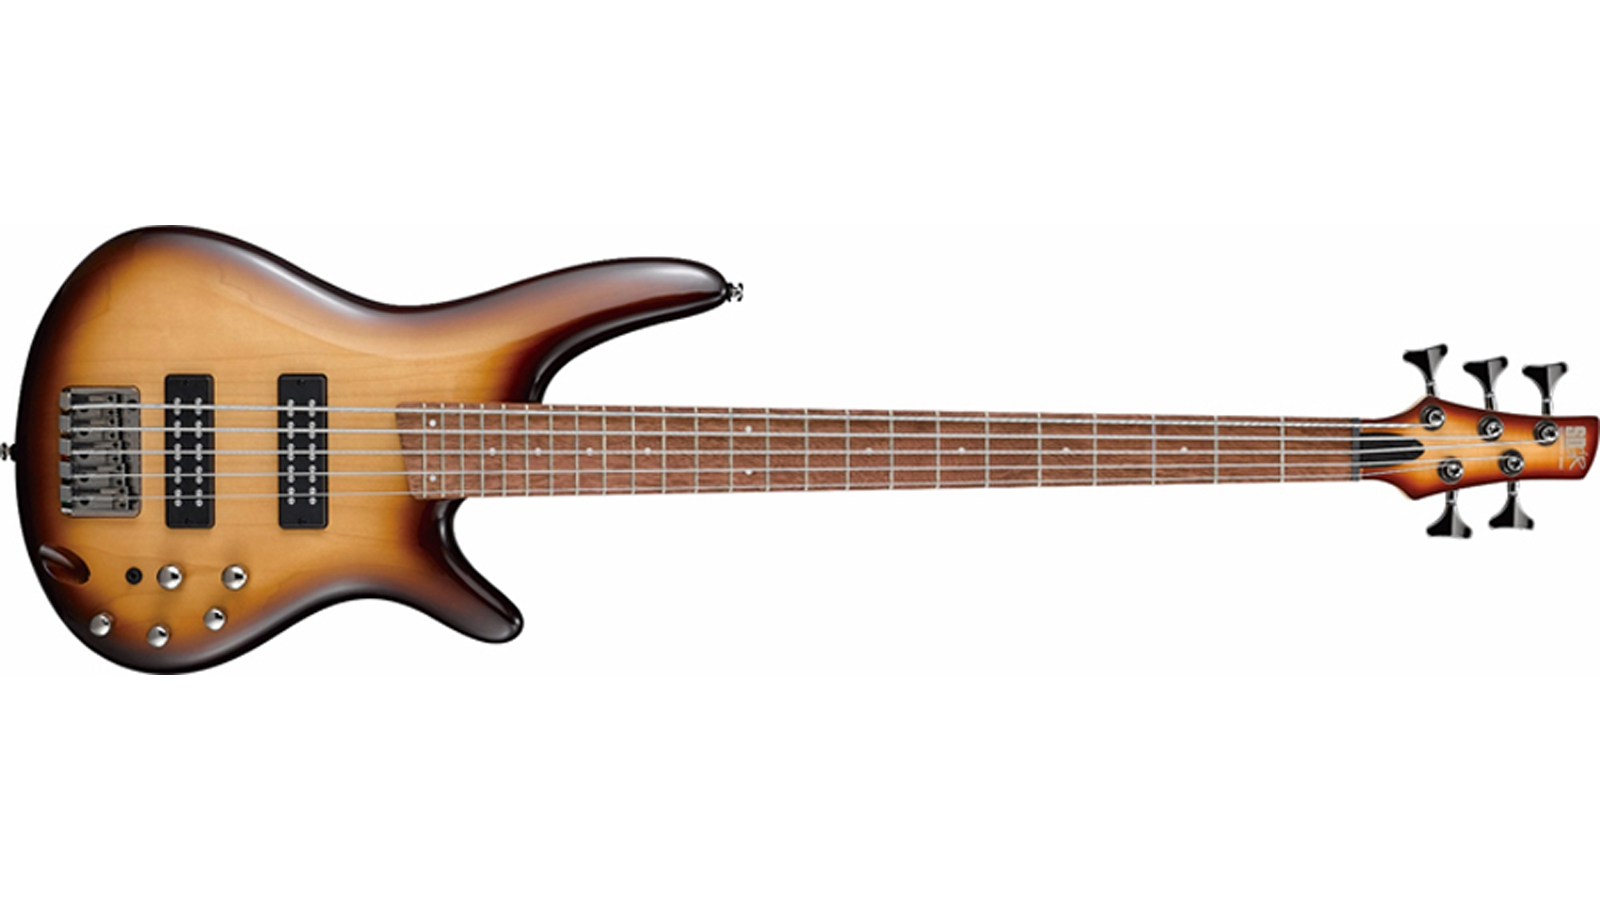 Ibanez SR375E-NNB E-BASS NATURAL BROWNED BURST 5-saiter